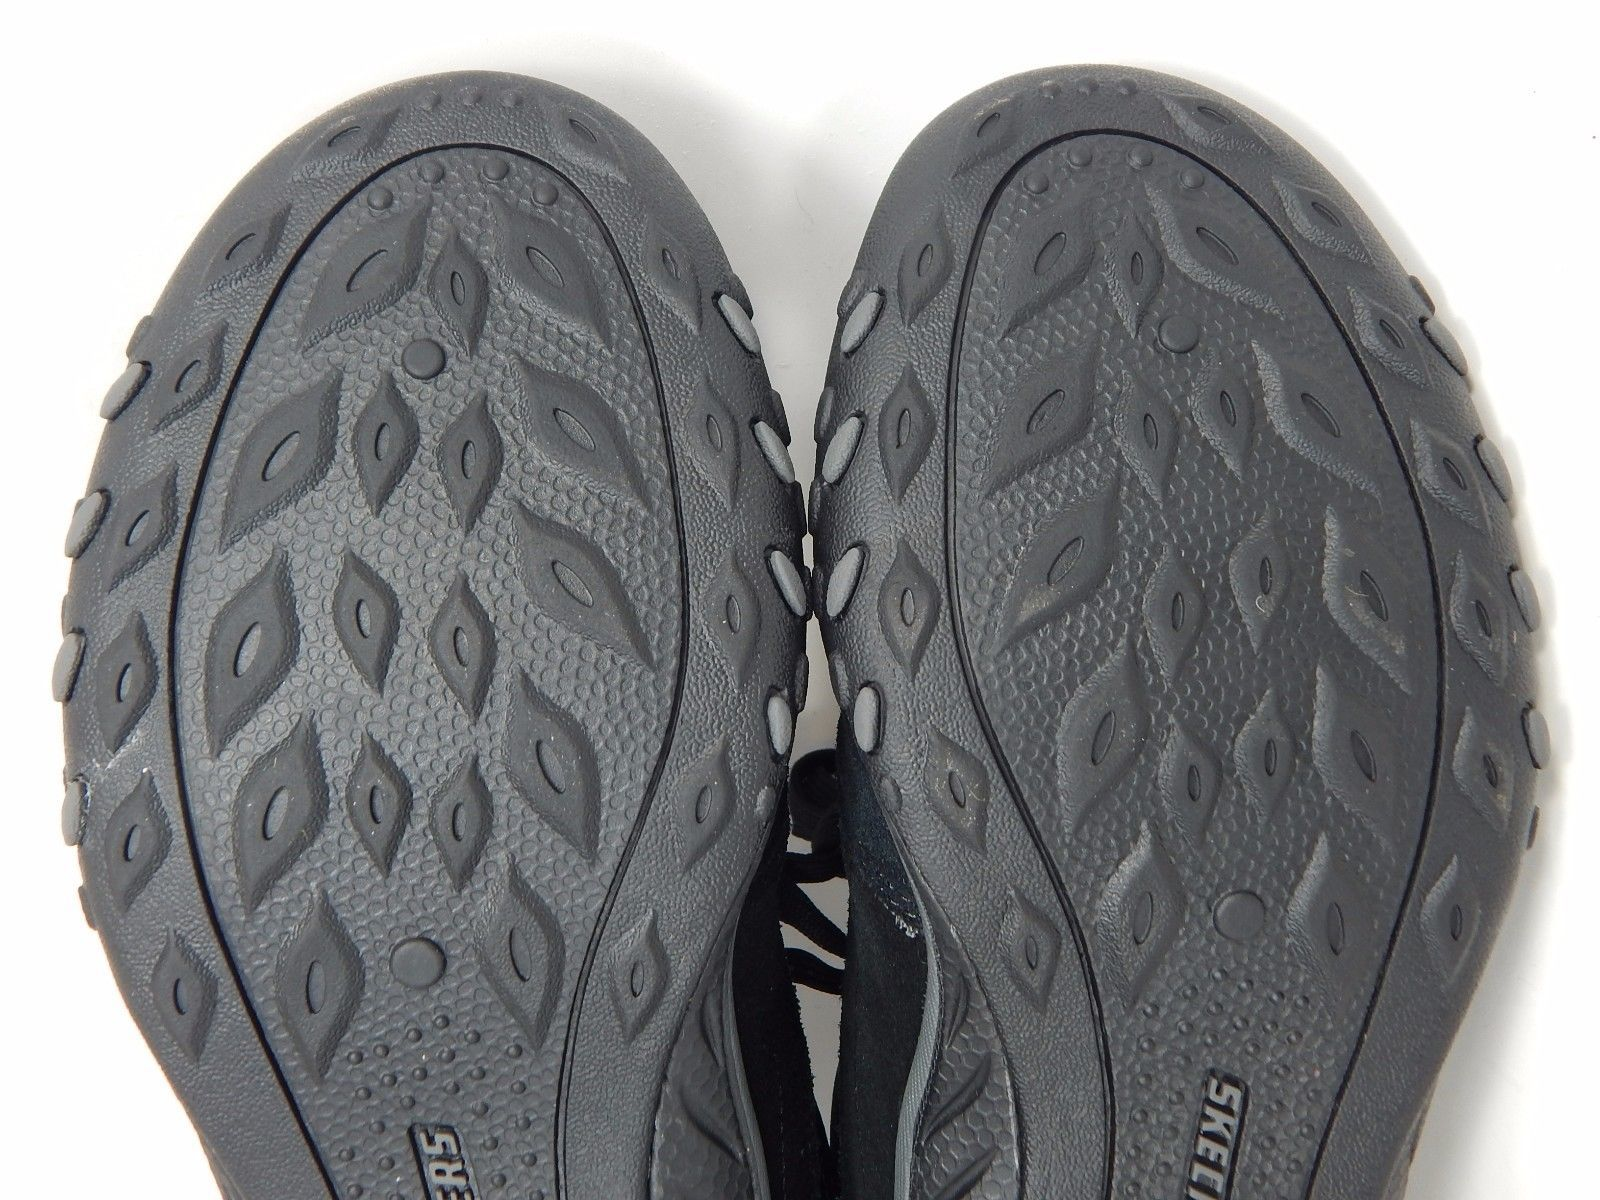 Skechers Relaxed Fit Breath Easy Women Comfort Shoes Size US 8 M (B) EU 38 Black